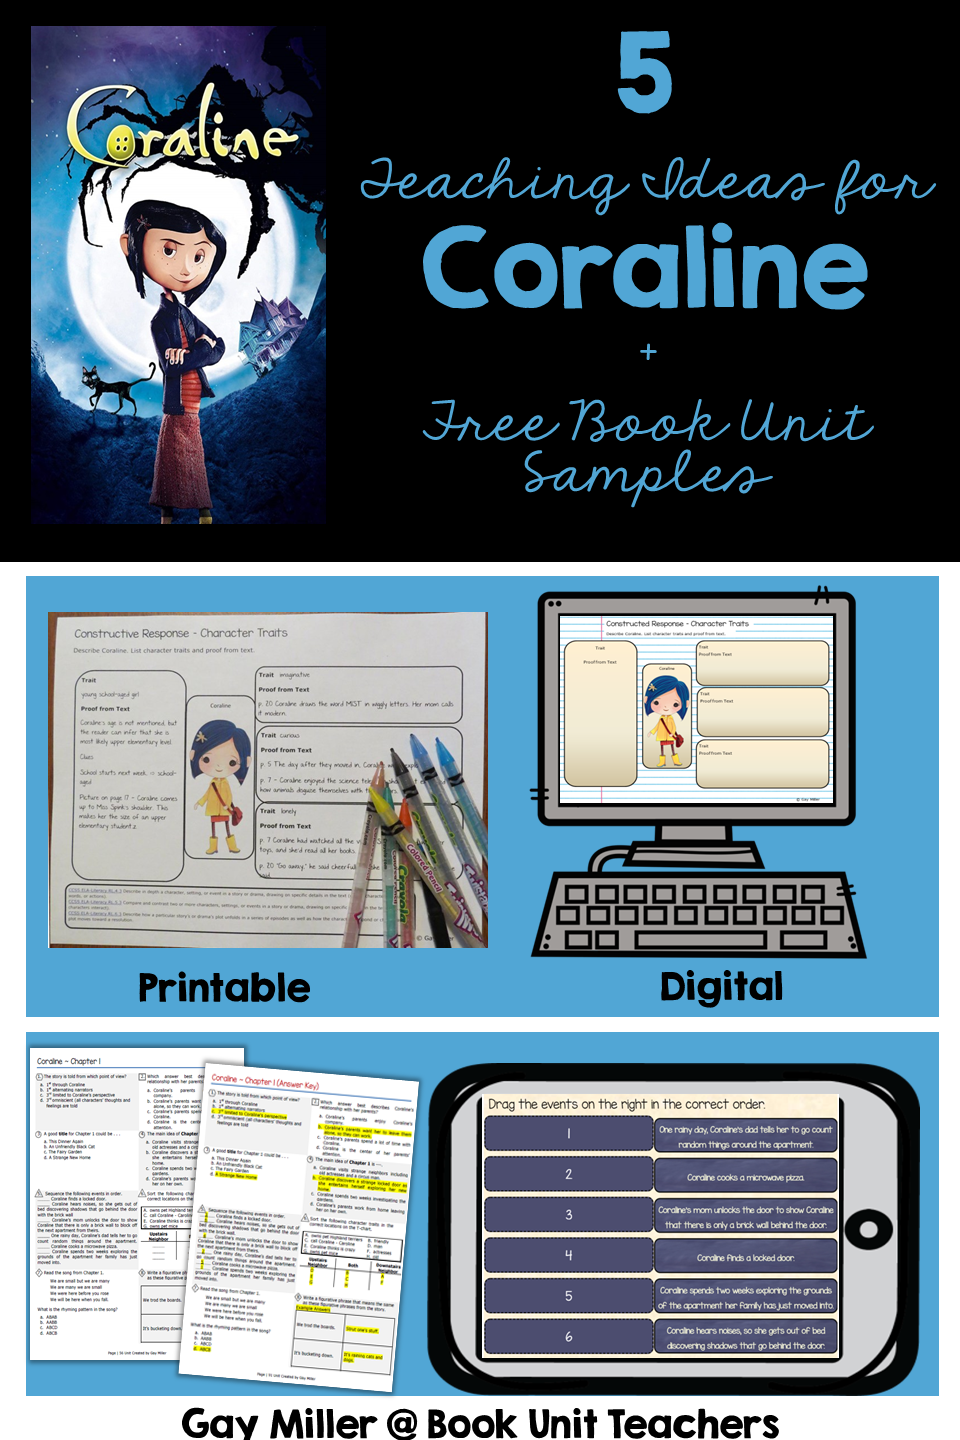 Coraline By Neil Gaiman Activities Book Units Teacher In 2020 Coraline Gaiman Neil Gaiman